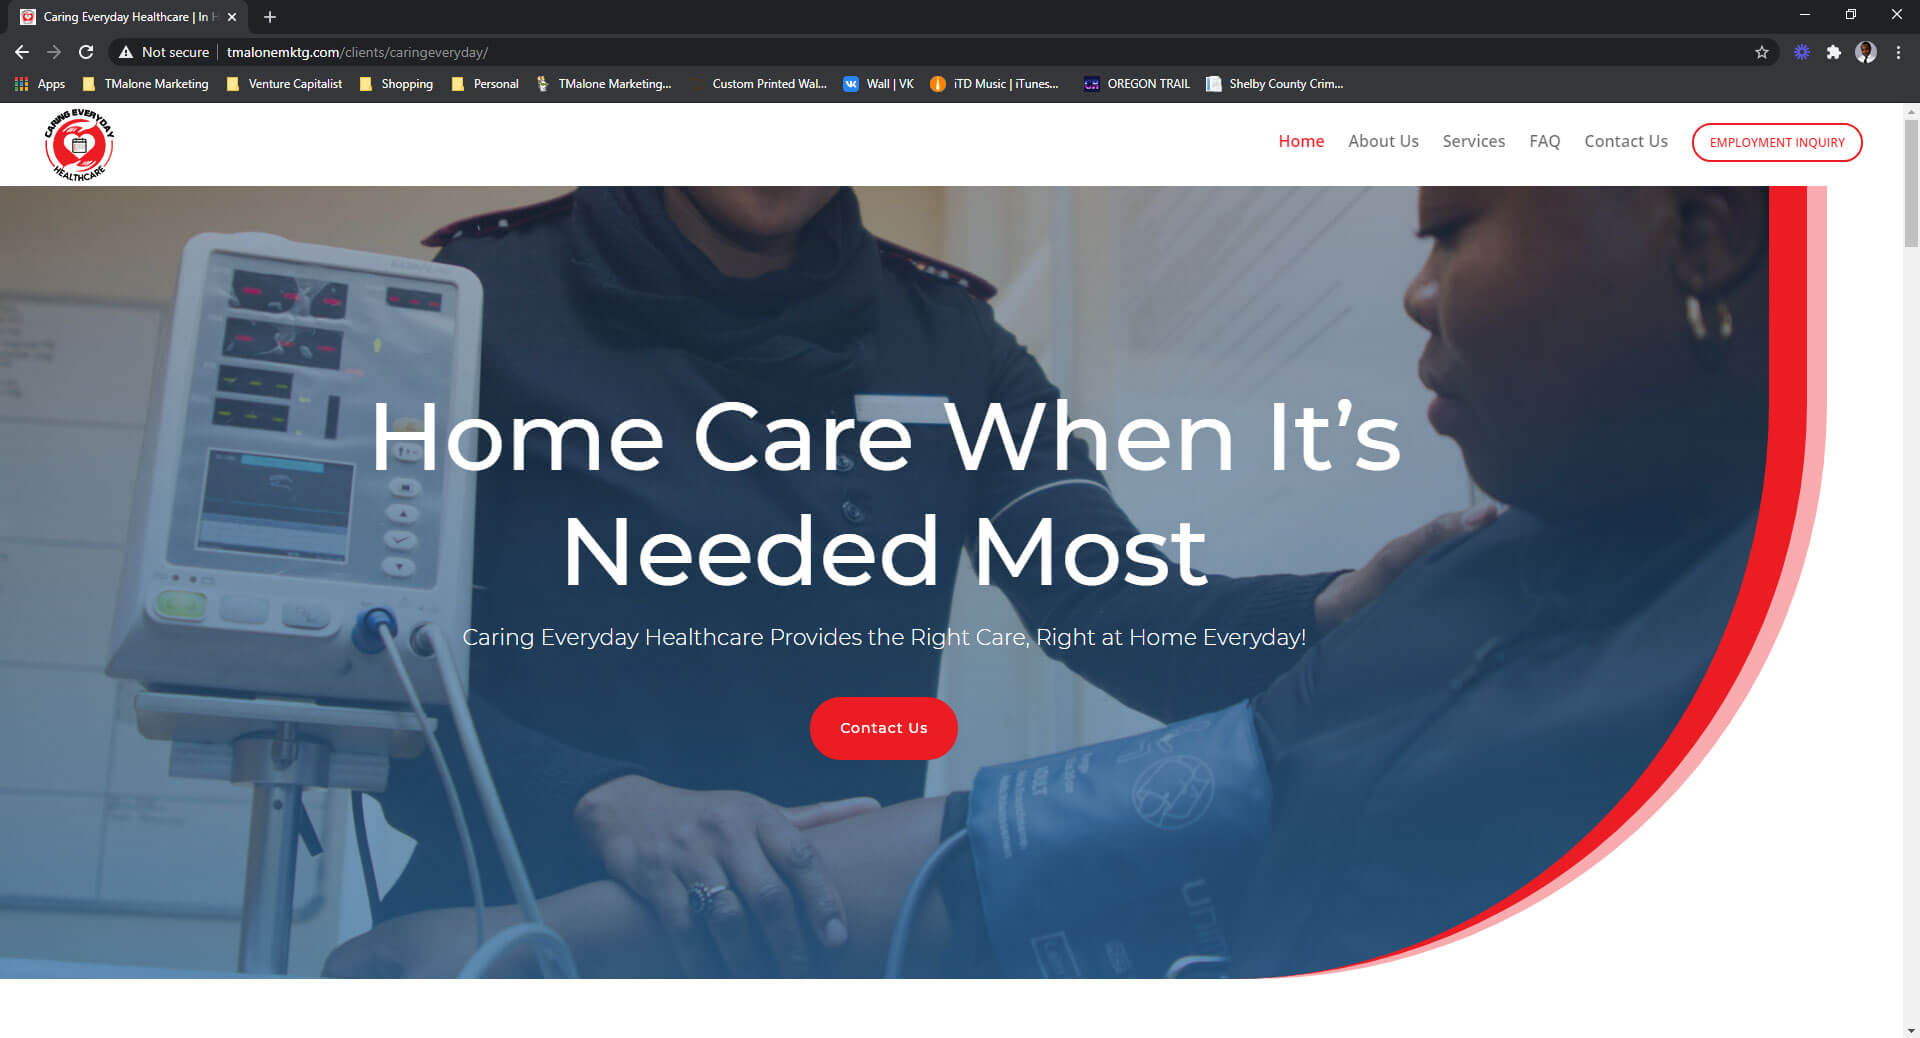 Caring Everyday Healthcare